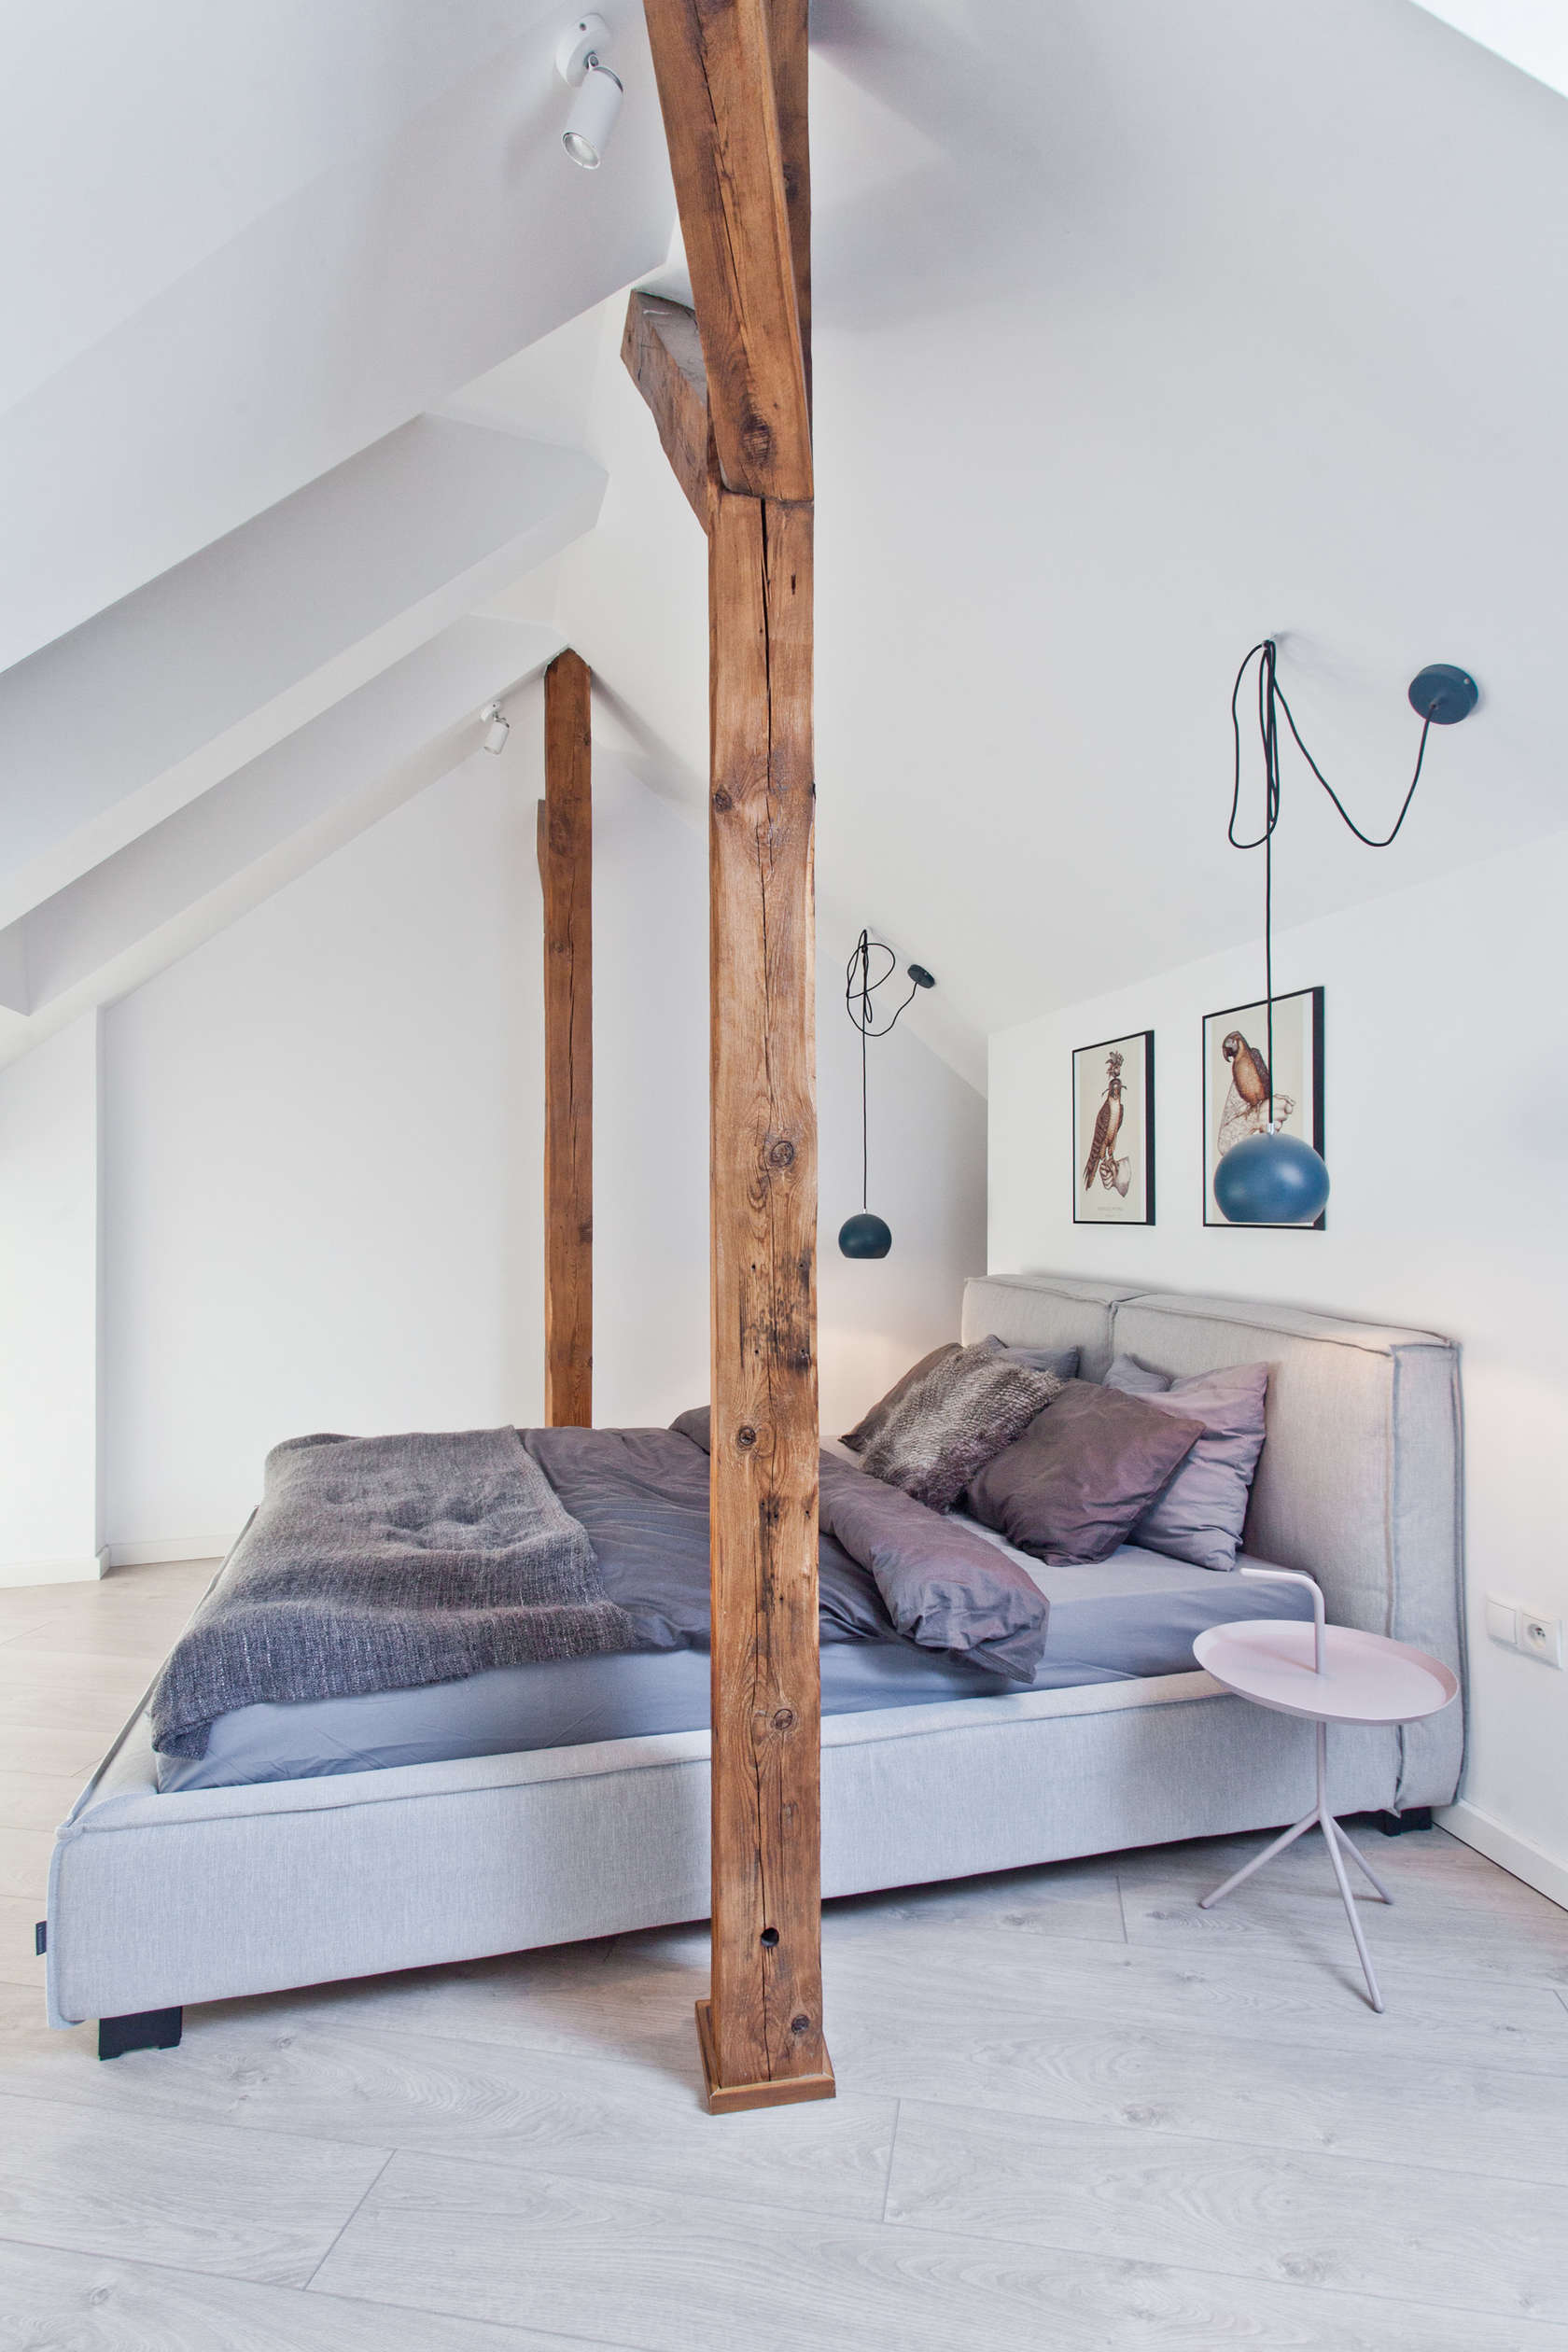 Pretty Bedroom Design - An old attic is transformed into a gorgeous apartment